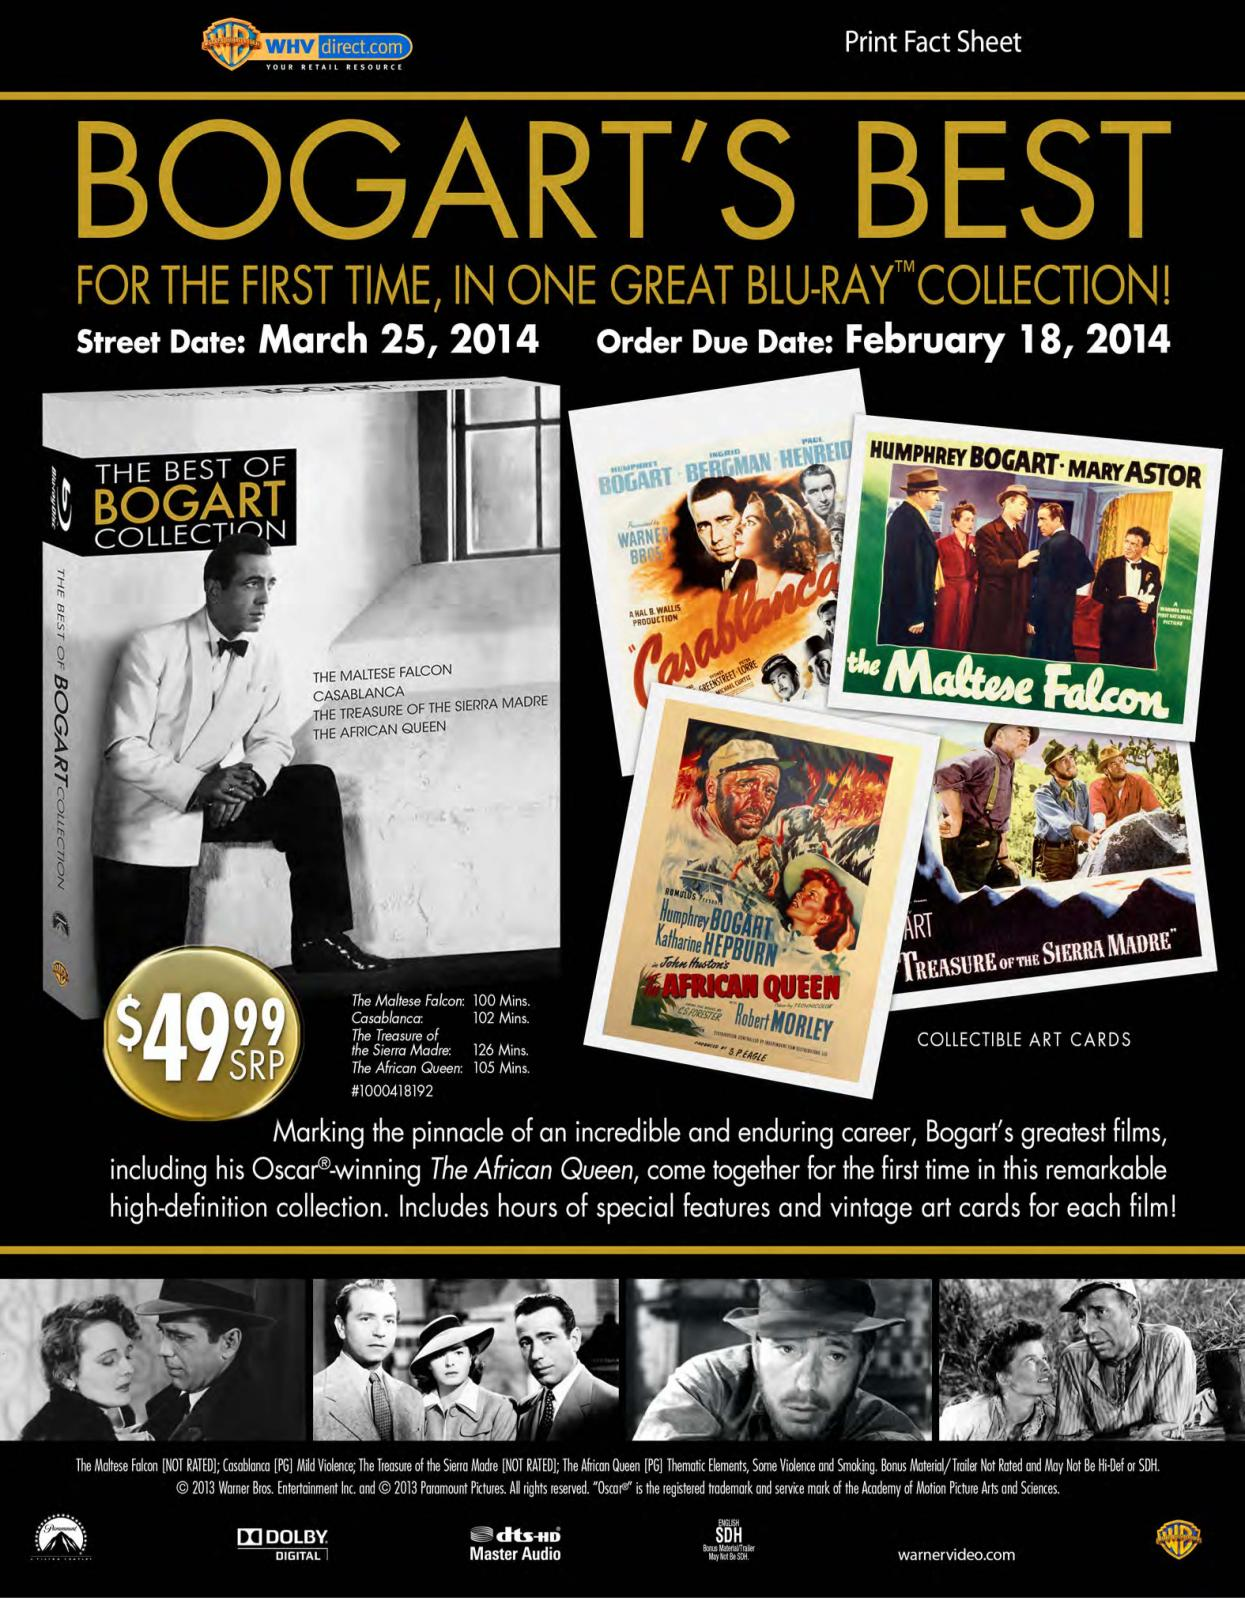 Best of Bogart Announce.jpg